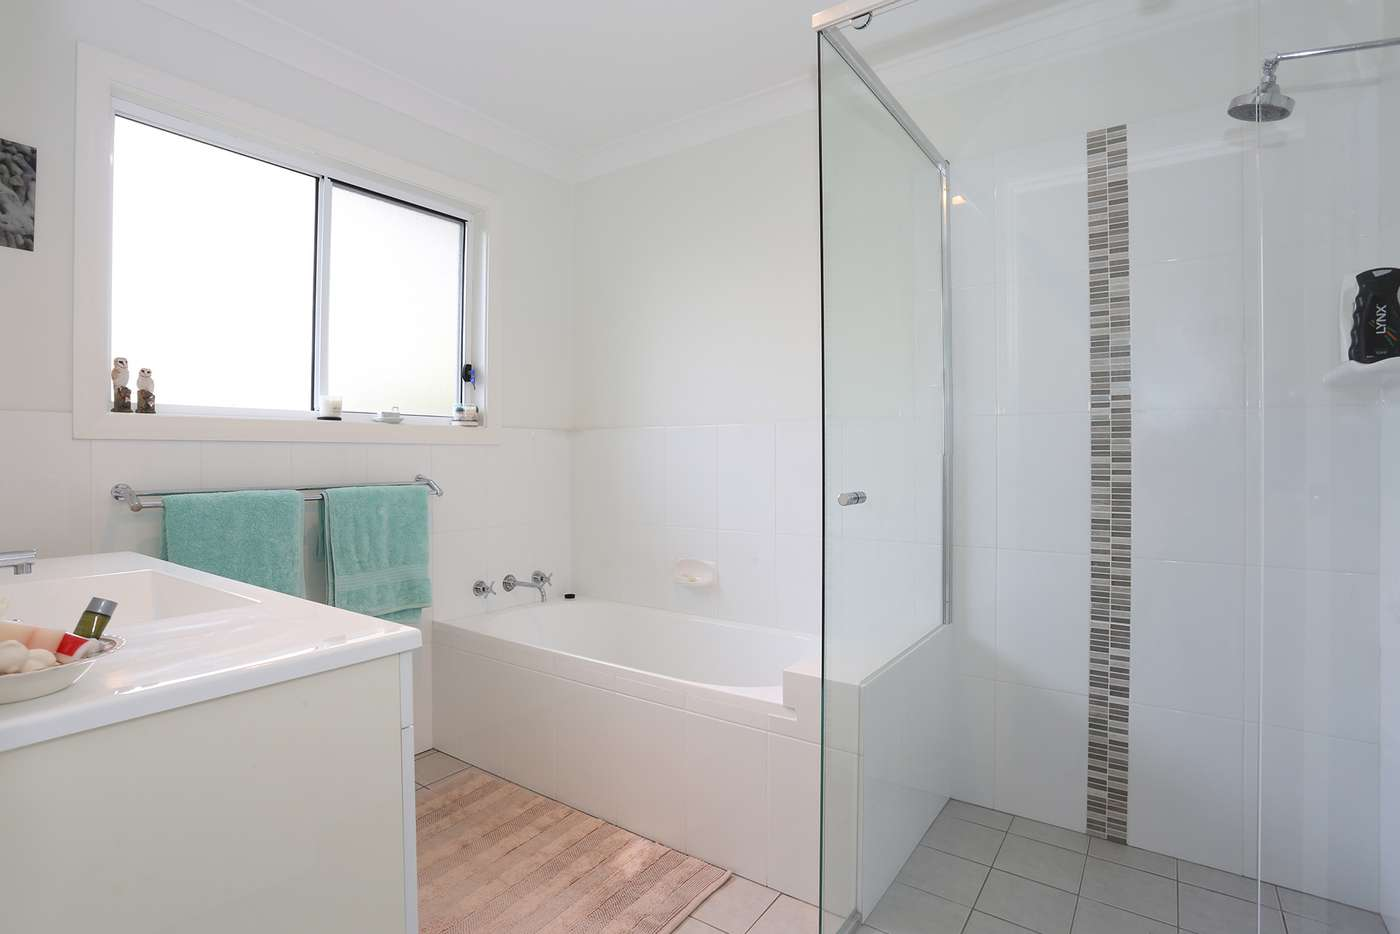 Seventh view of Homely house listing, 18 Nirringa Road, Summerland Point NSW 2259